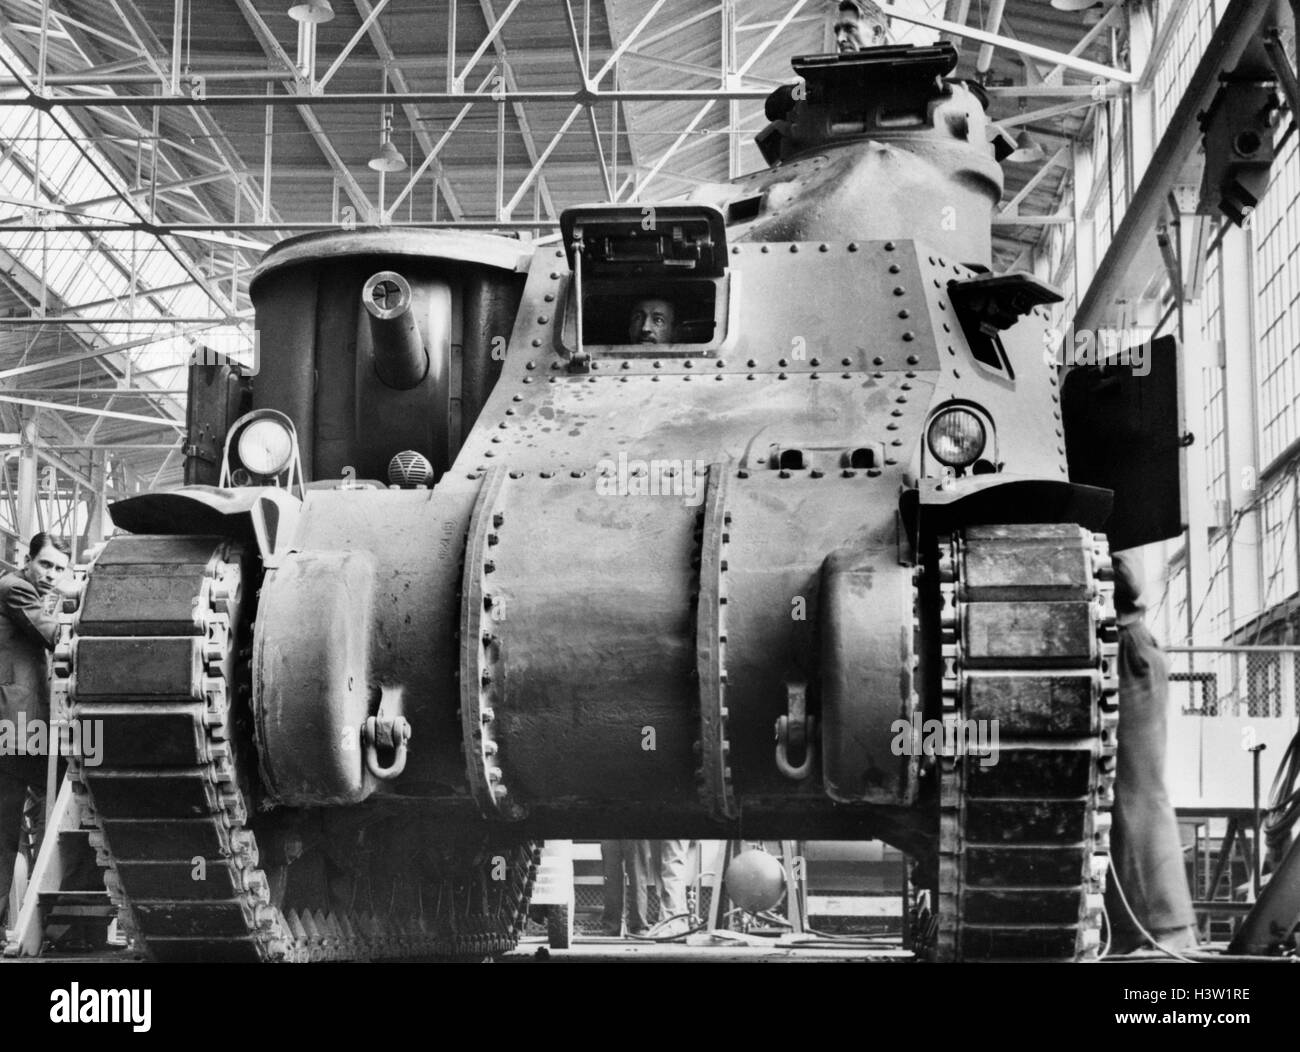 1940s 1941 FIRST CHRYSLER M3 MEDIUM TANK FINAL INSPECTION ON INDUSTRIAL ASSEMBLY LINE VARIOUSLY CALLED LEE OR GRANT - Stock Image